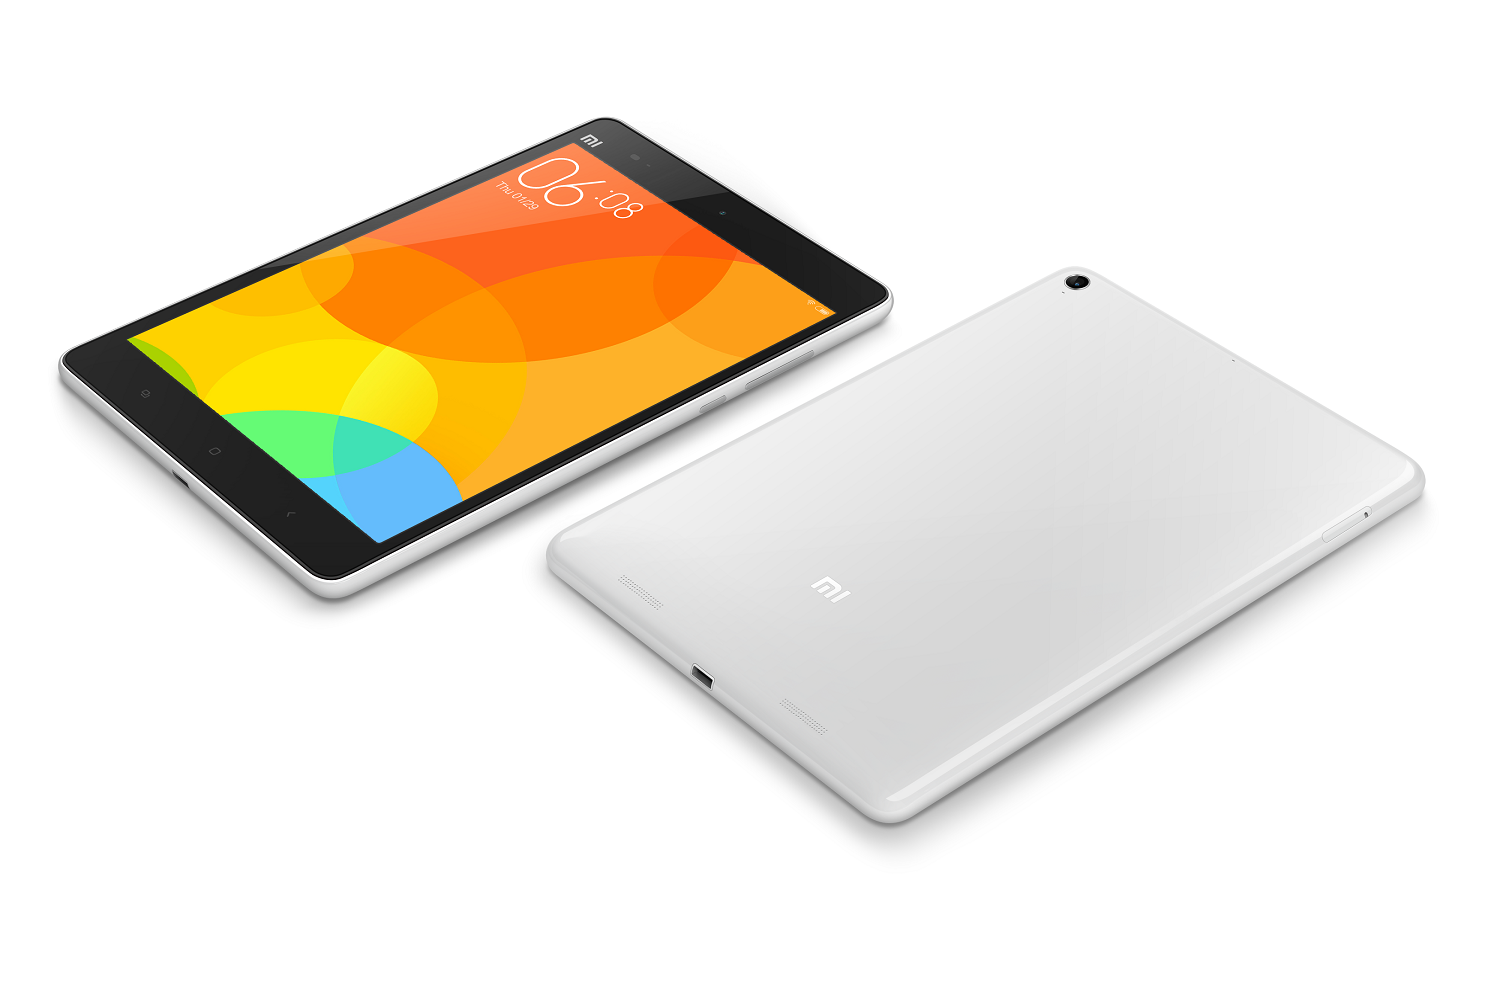 Mi pad review and features